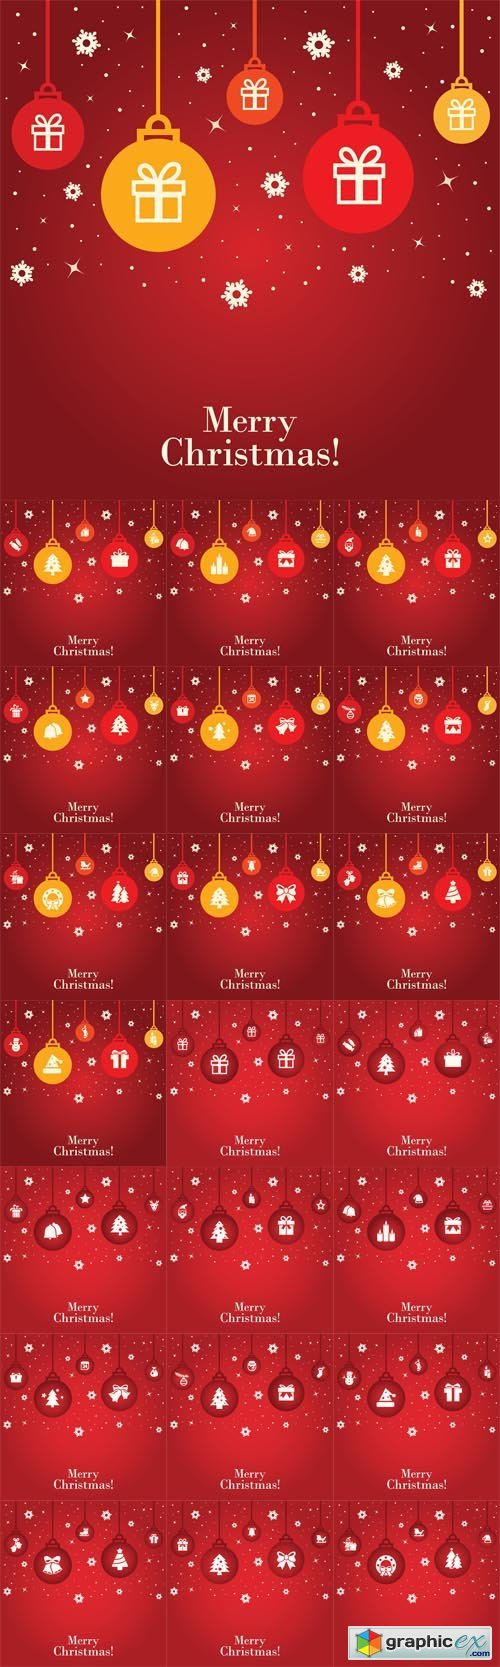 Red Christmas Backgrounds with Gifts